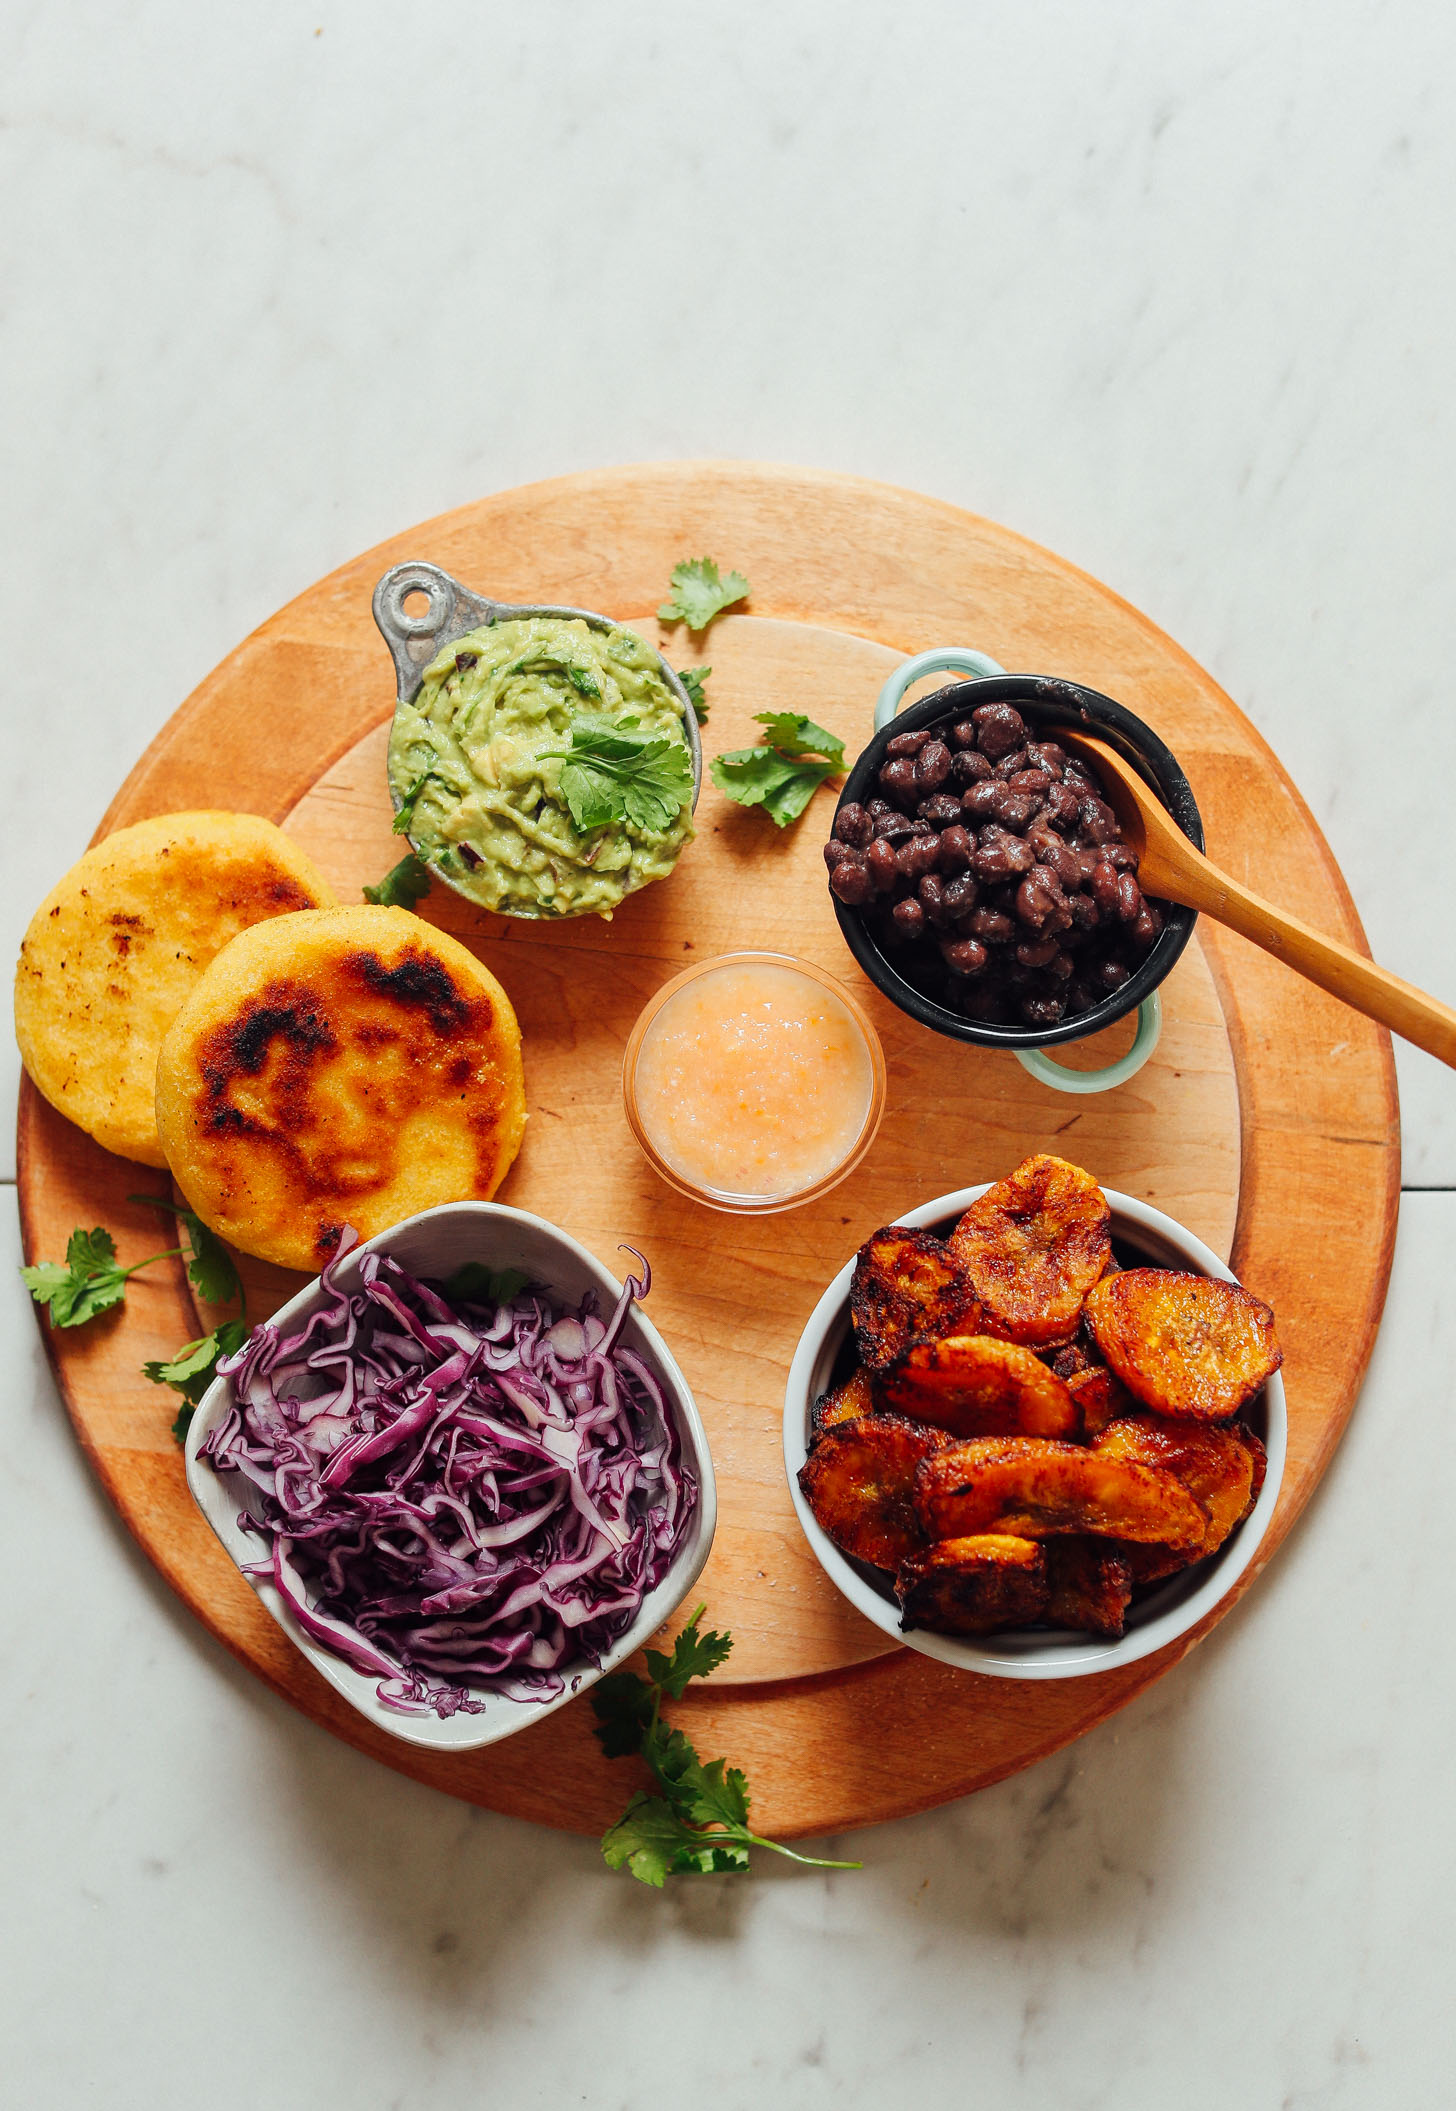 Tray of ingredients for making gluten-free Vegan Arepa Sandwiches